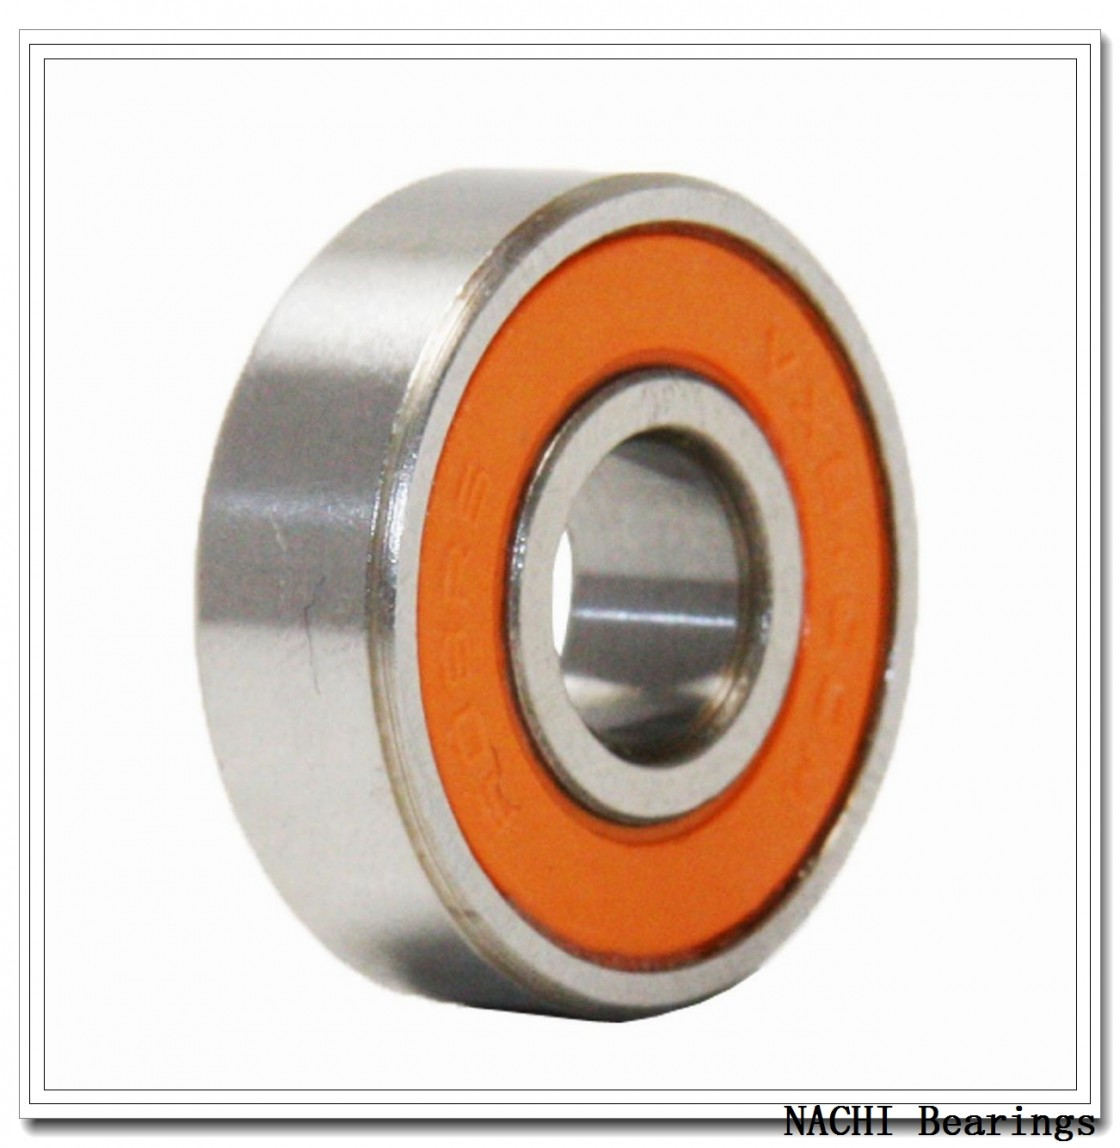 NACHI NJ 1026 cylindrical roller bearings